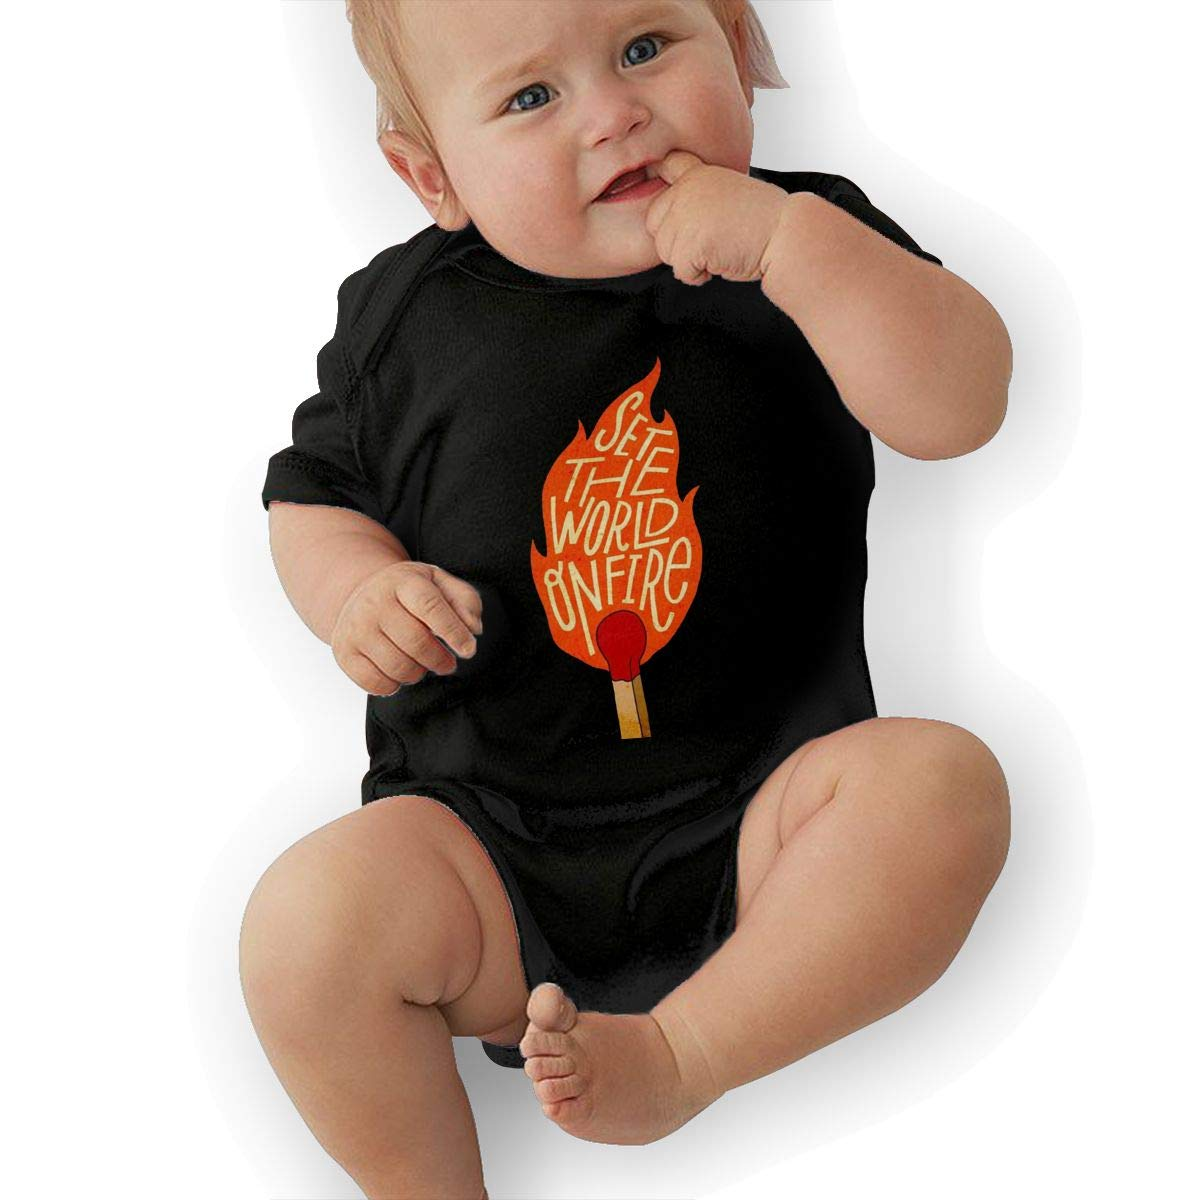 Set The World On Fire Newborn Baby Short Sleeve Romper Infant Summer Clothing